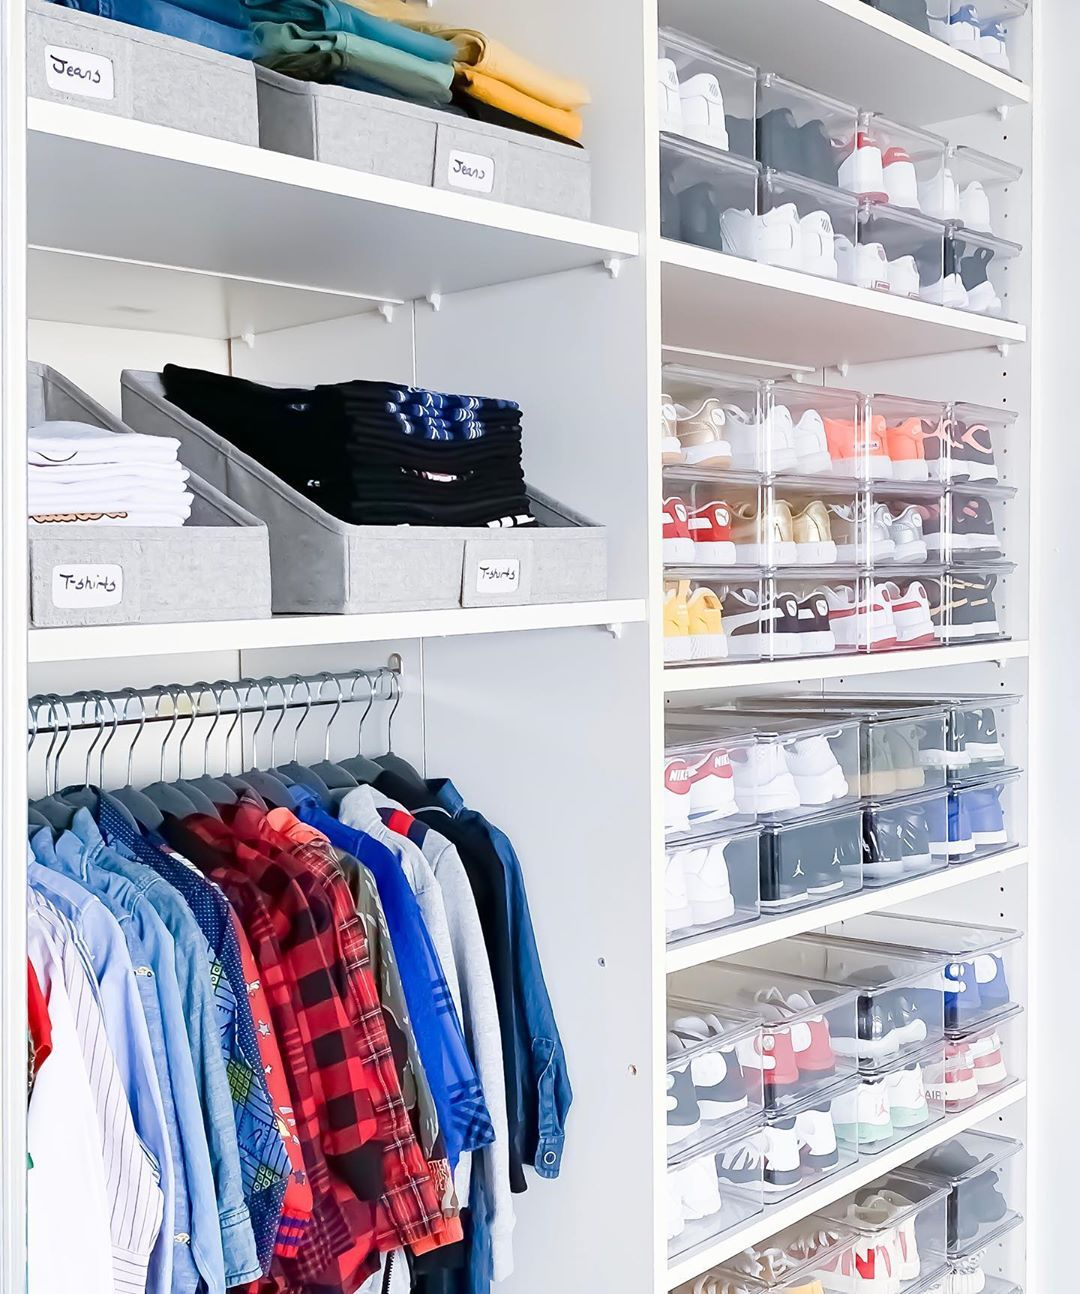 The Project Neat On Instagram We Spent Our Day Revamping The Cutest Little Boys Closet Matching Ha Boys Closet Kids Closet Organization Closet Organization